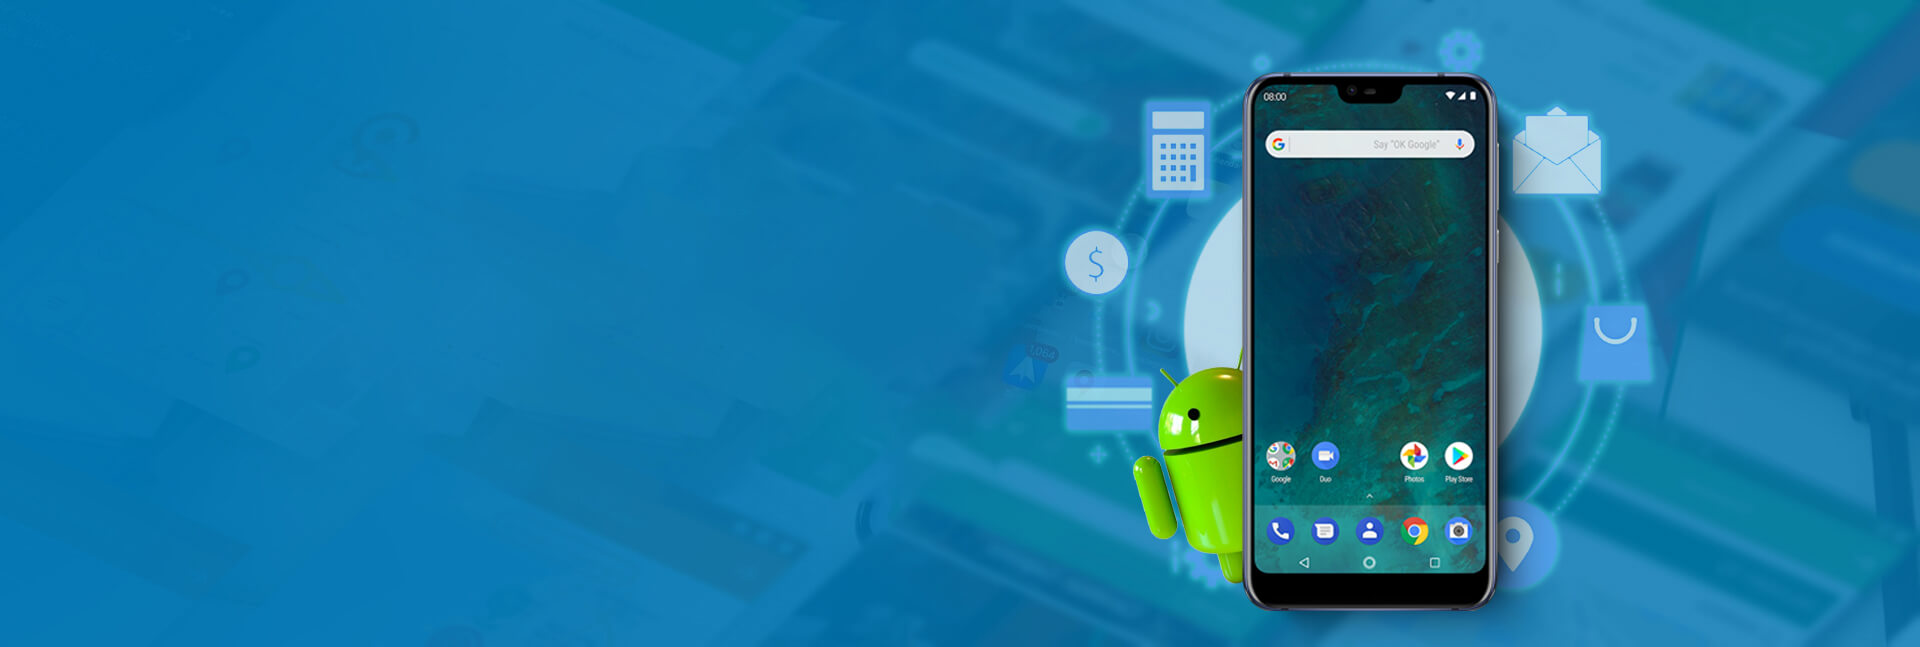 Hire Android App Developers | App Development Company Australia | Hire Mobile App Developers